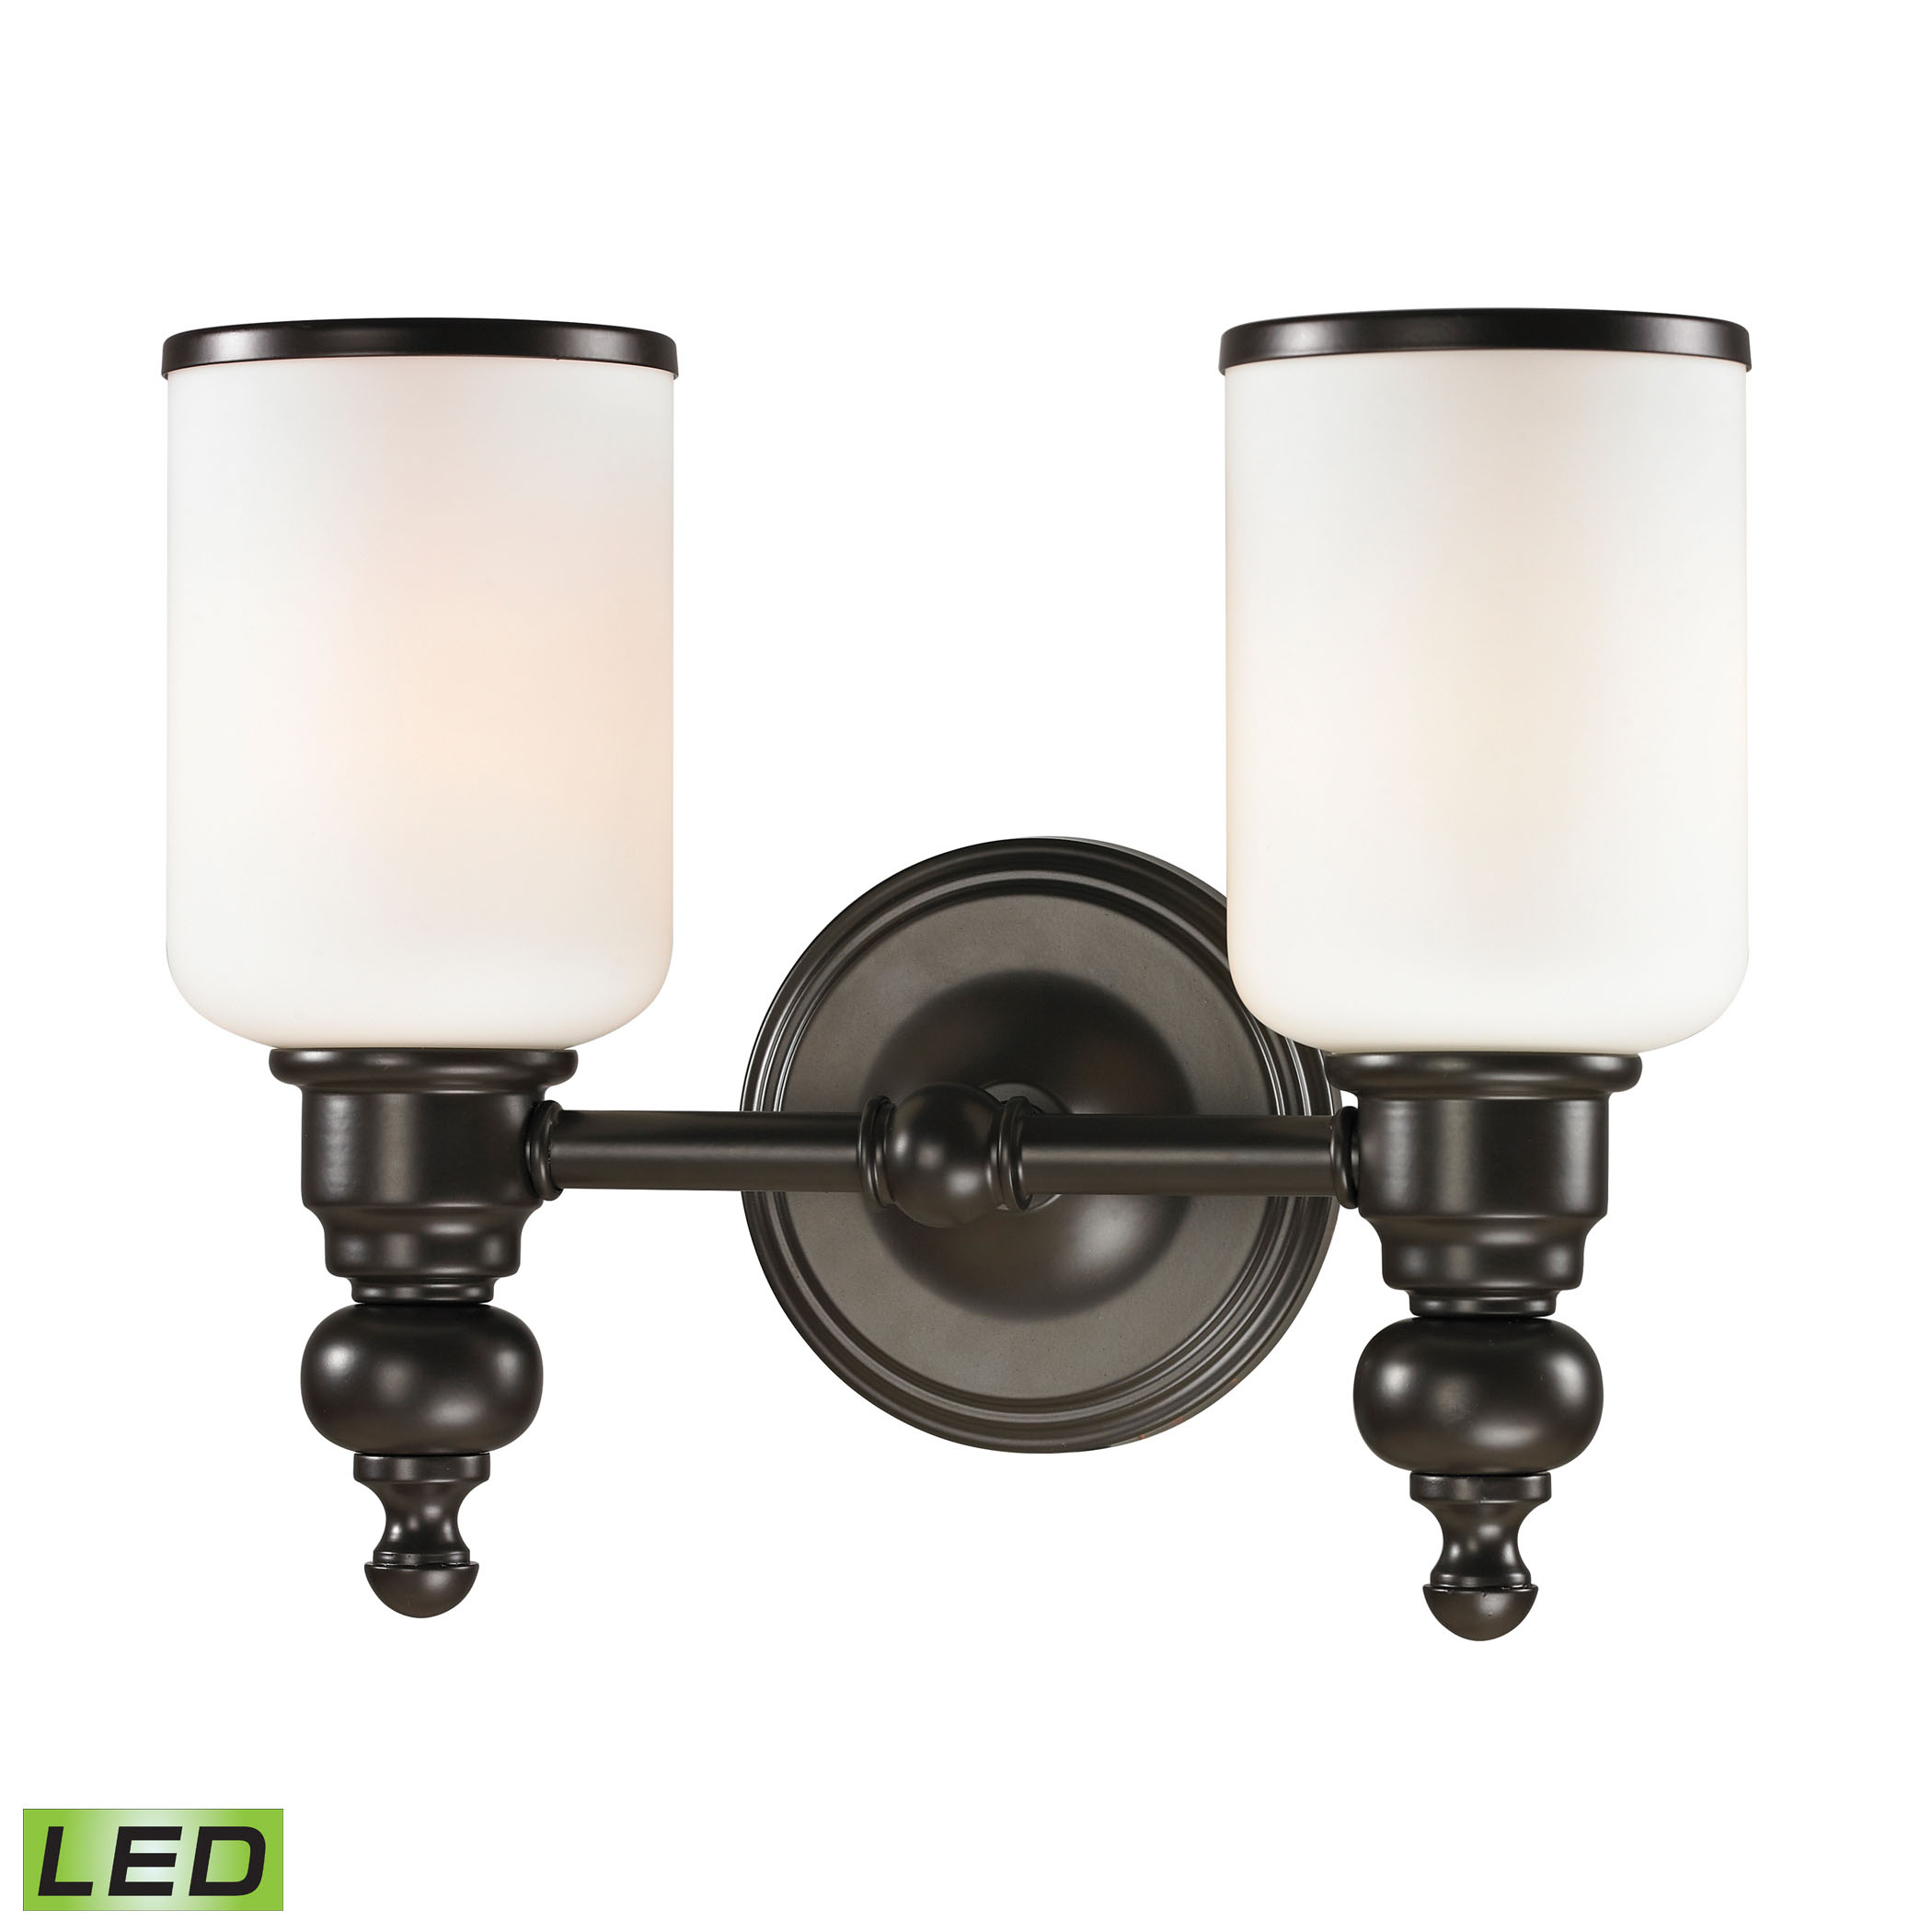 Bristol Collection 2 light bath in Oil Rubbed Bronze - LED, 800 Lumens (1600 Lumens Total) with Full